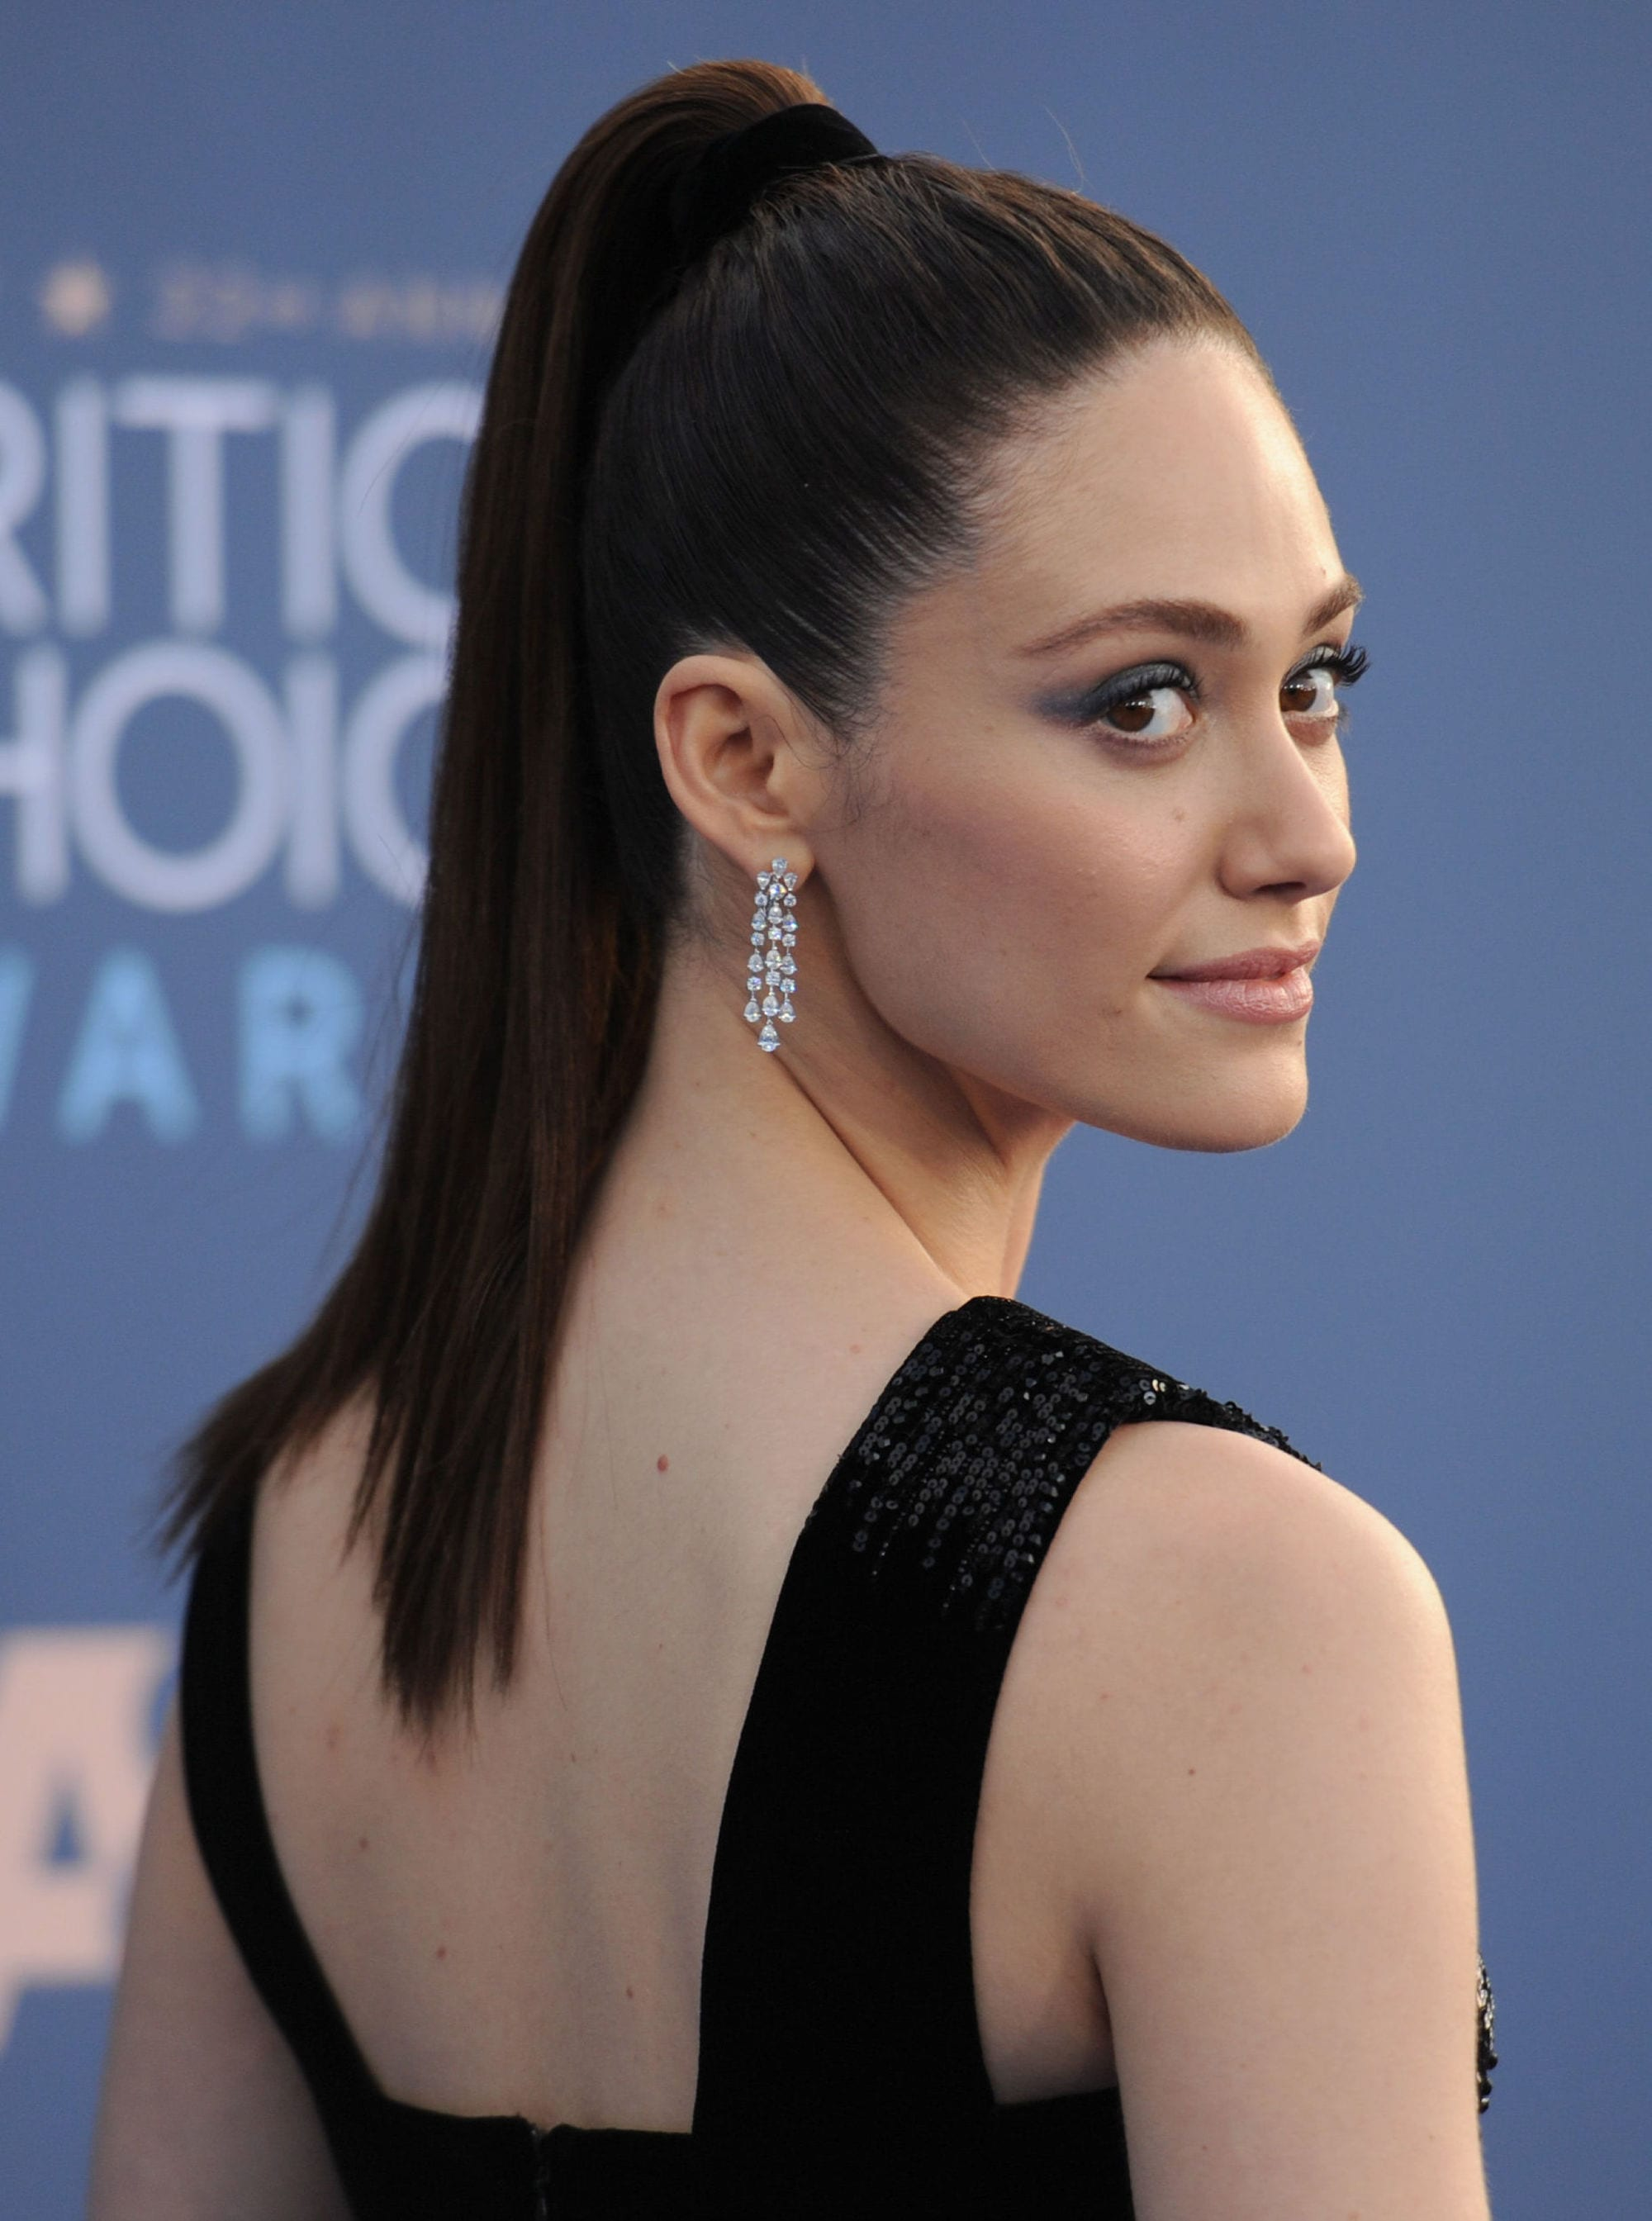 emmy rossum with high ponytail hairstyle on the red carpet